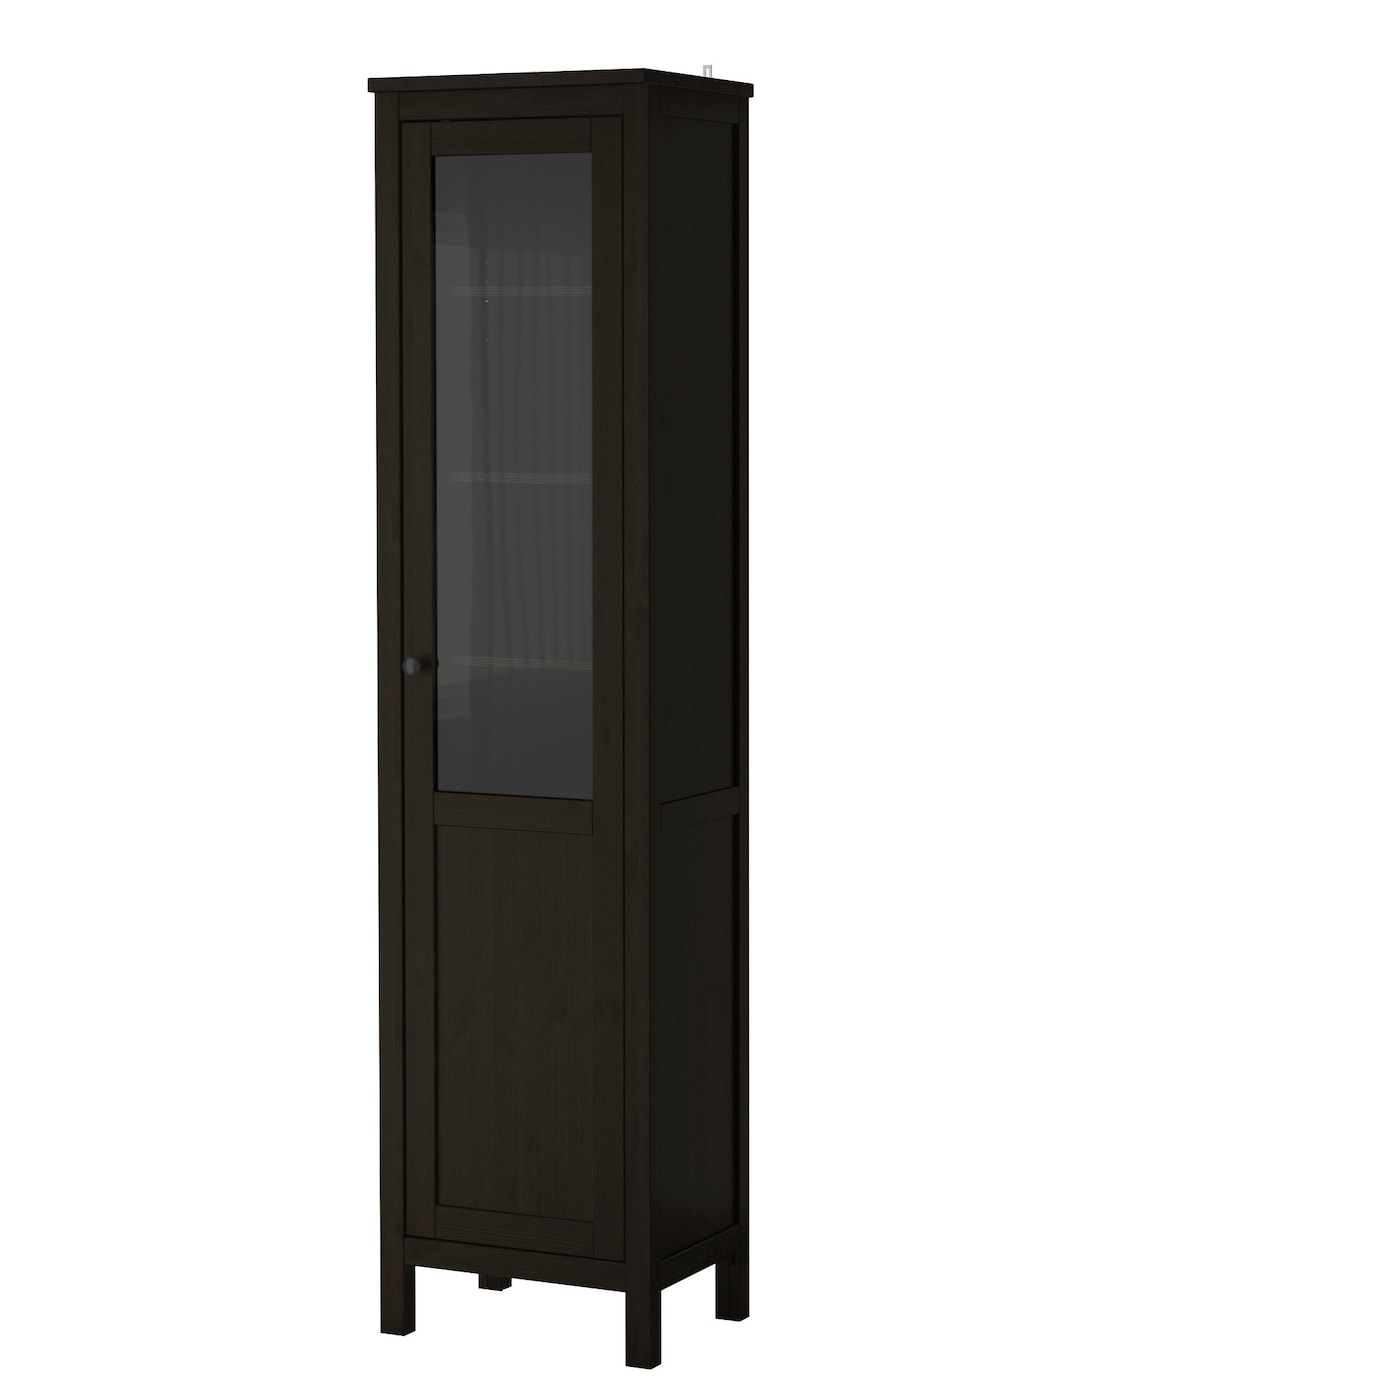 Hemnes Cabinet With Panel Glass Door Black Brown 49x197 Cm